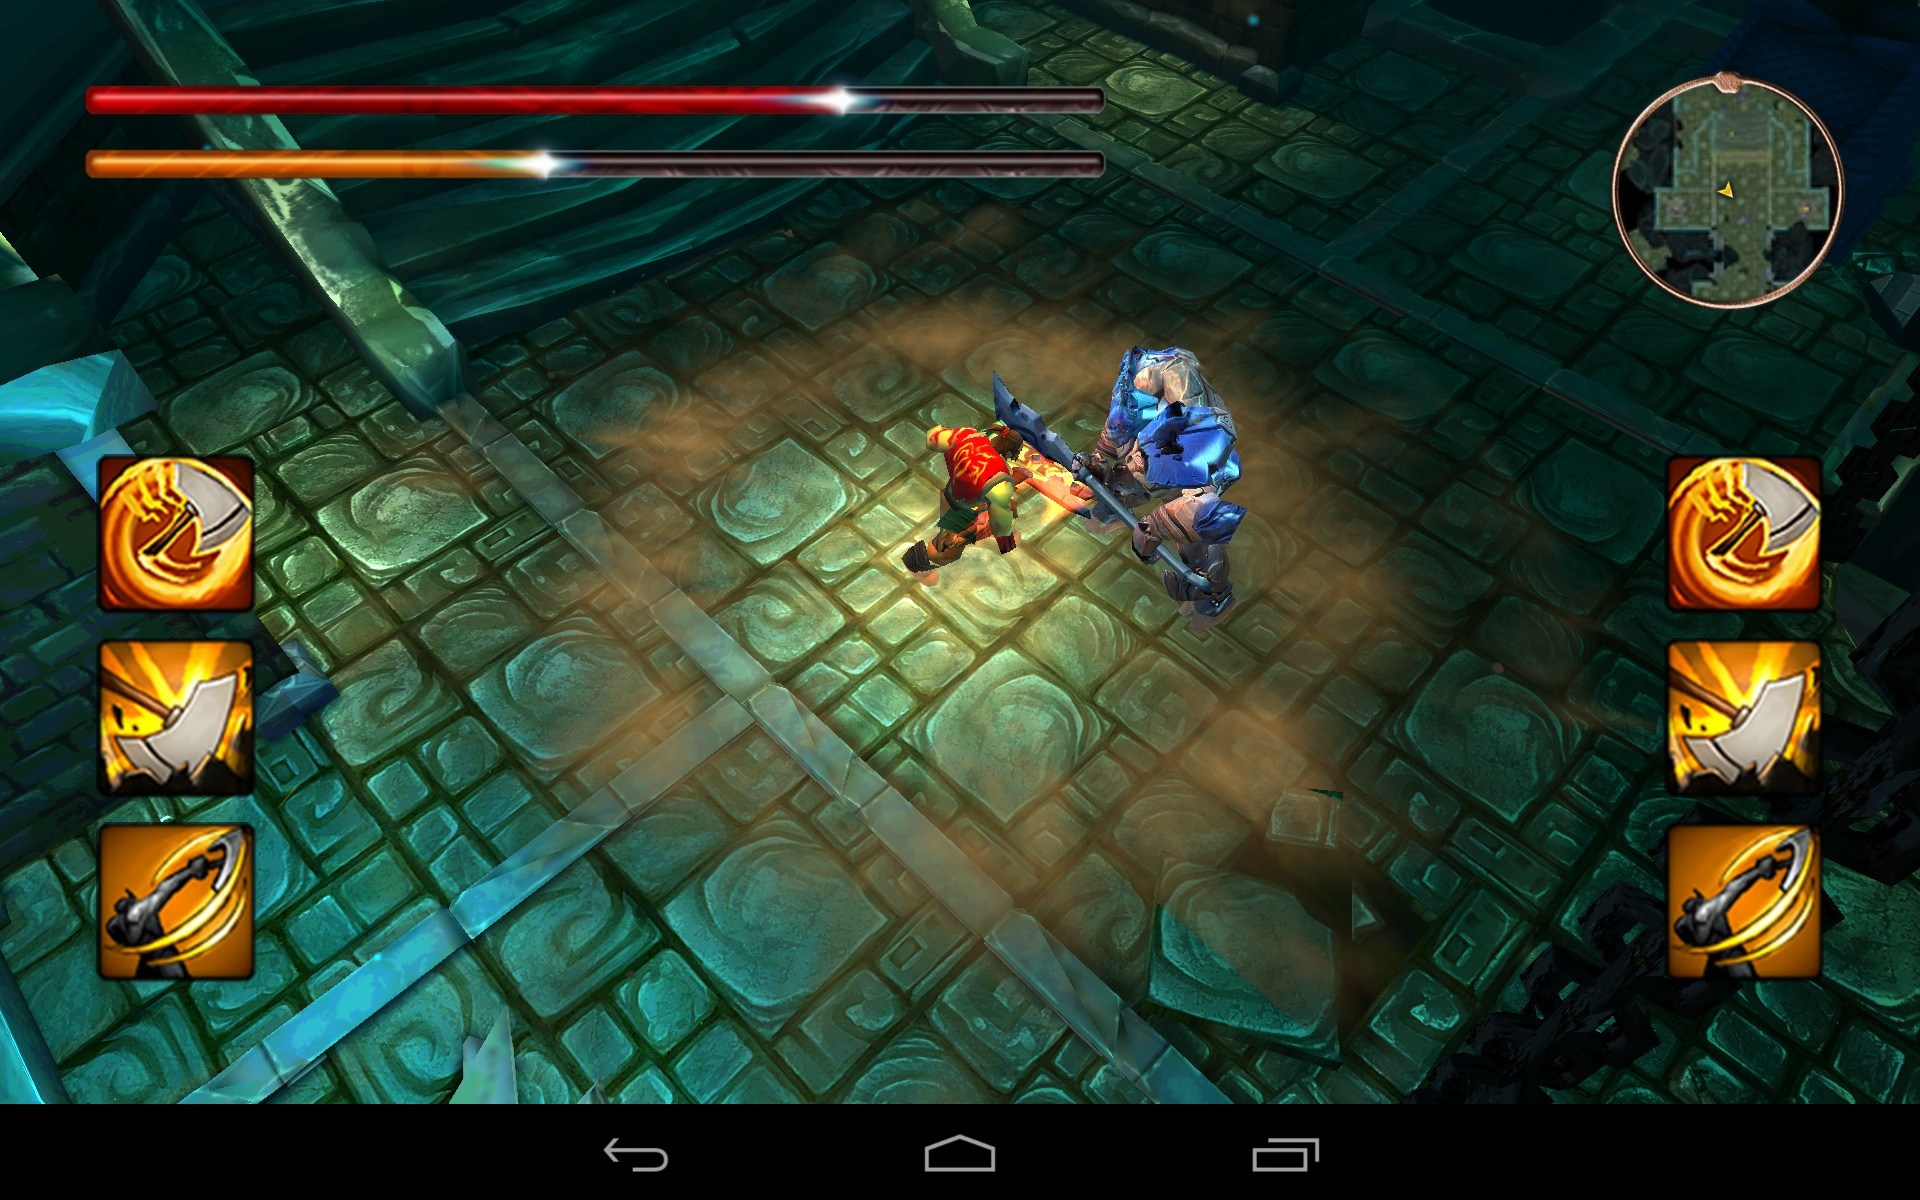 download games free for android 2.3